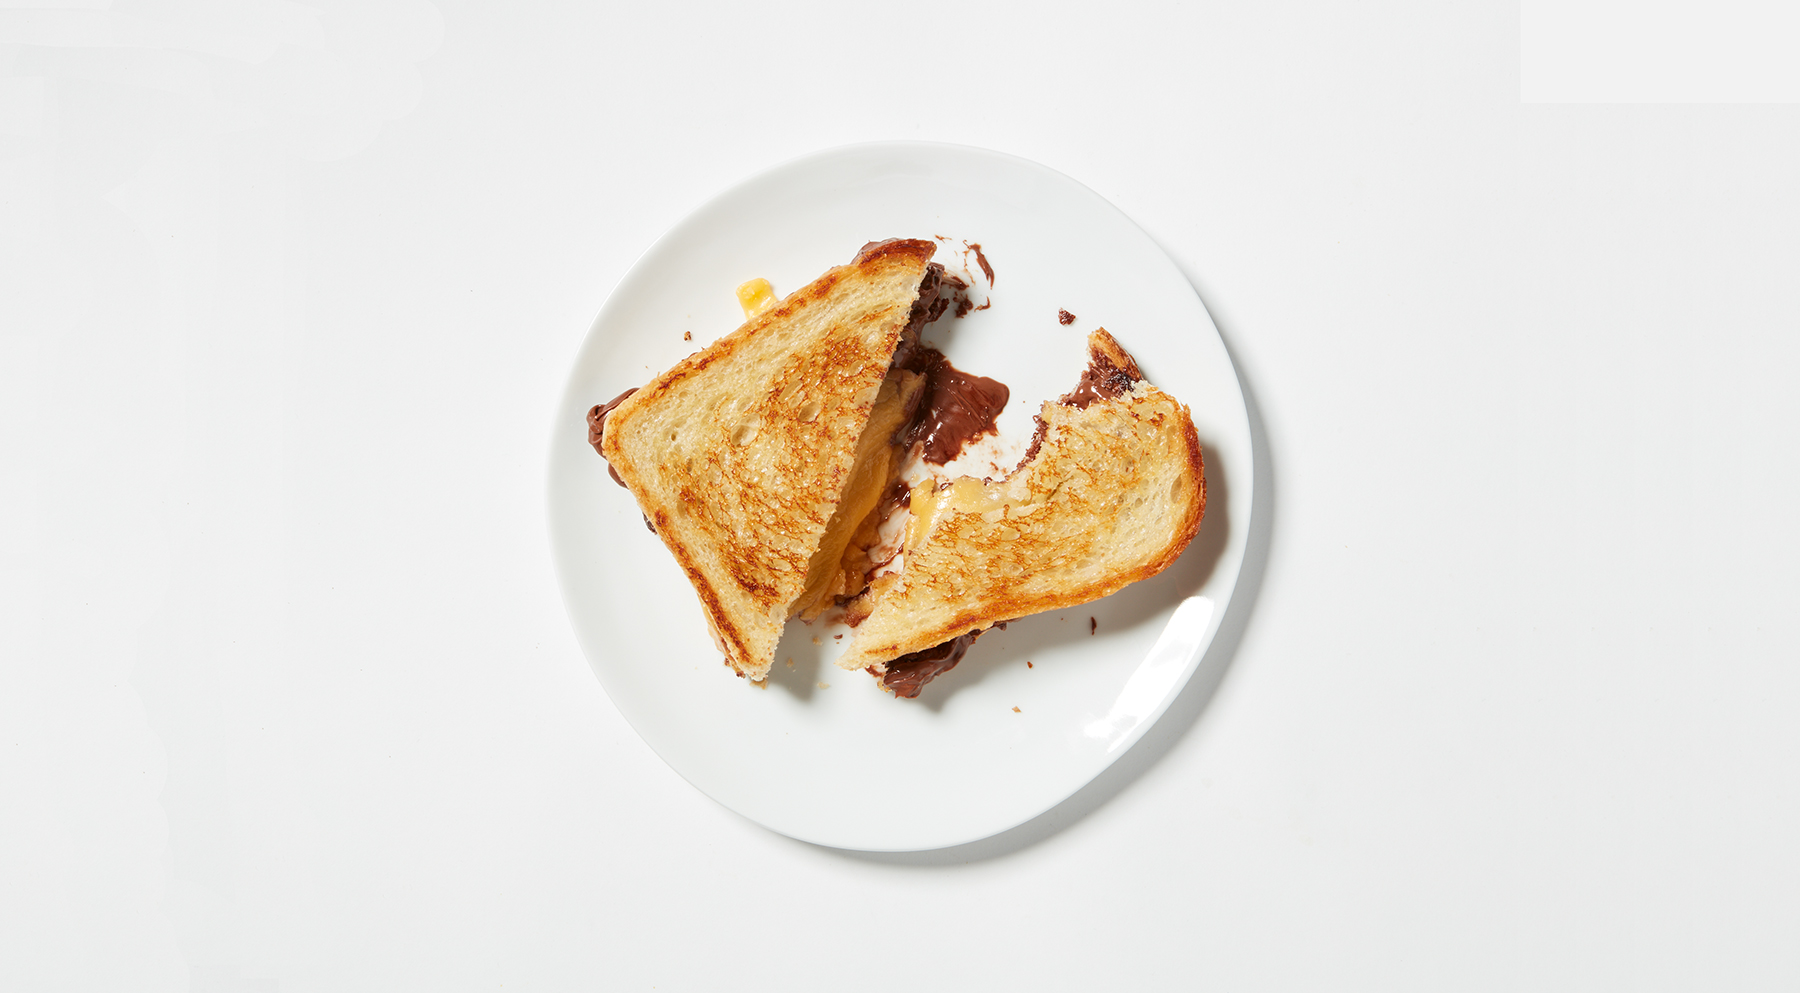 My Favorite Grilled Cheese Recipe IsControversial—But It WinsOver Skeptics Every Time